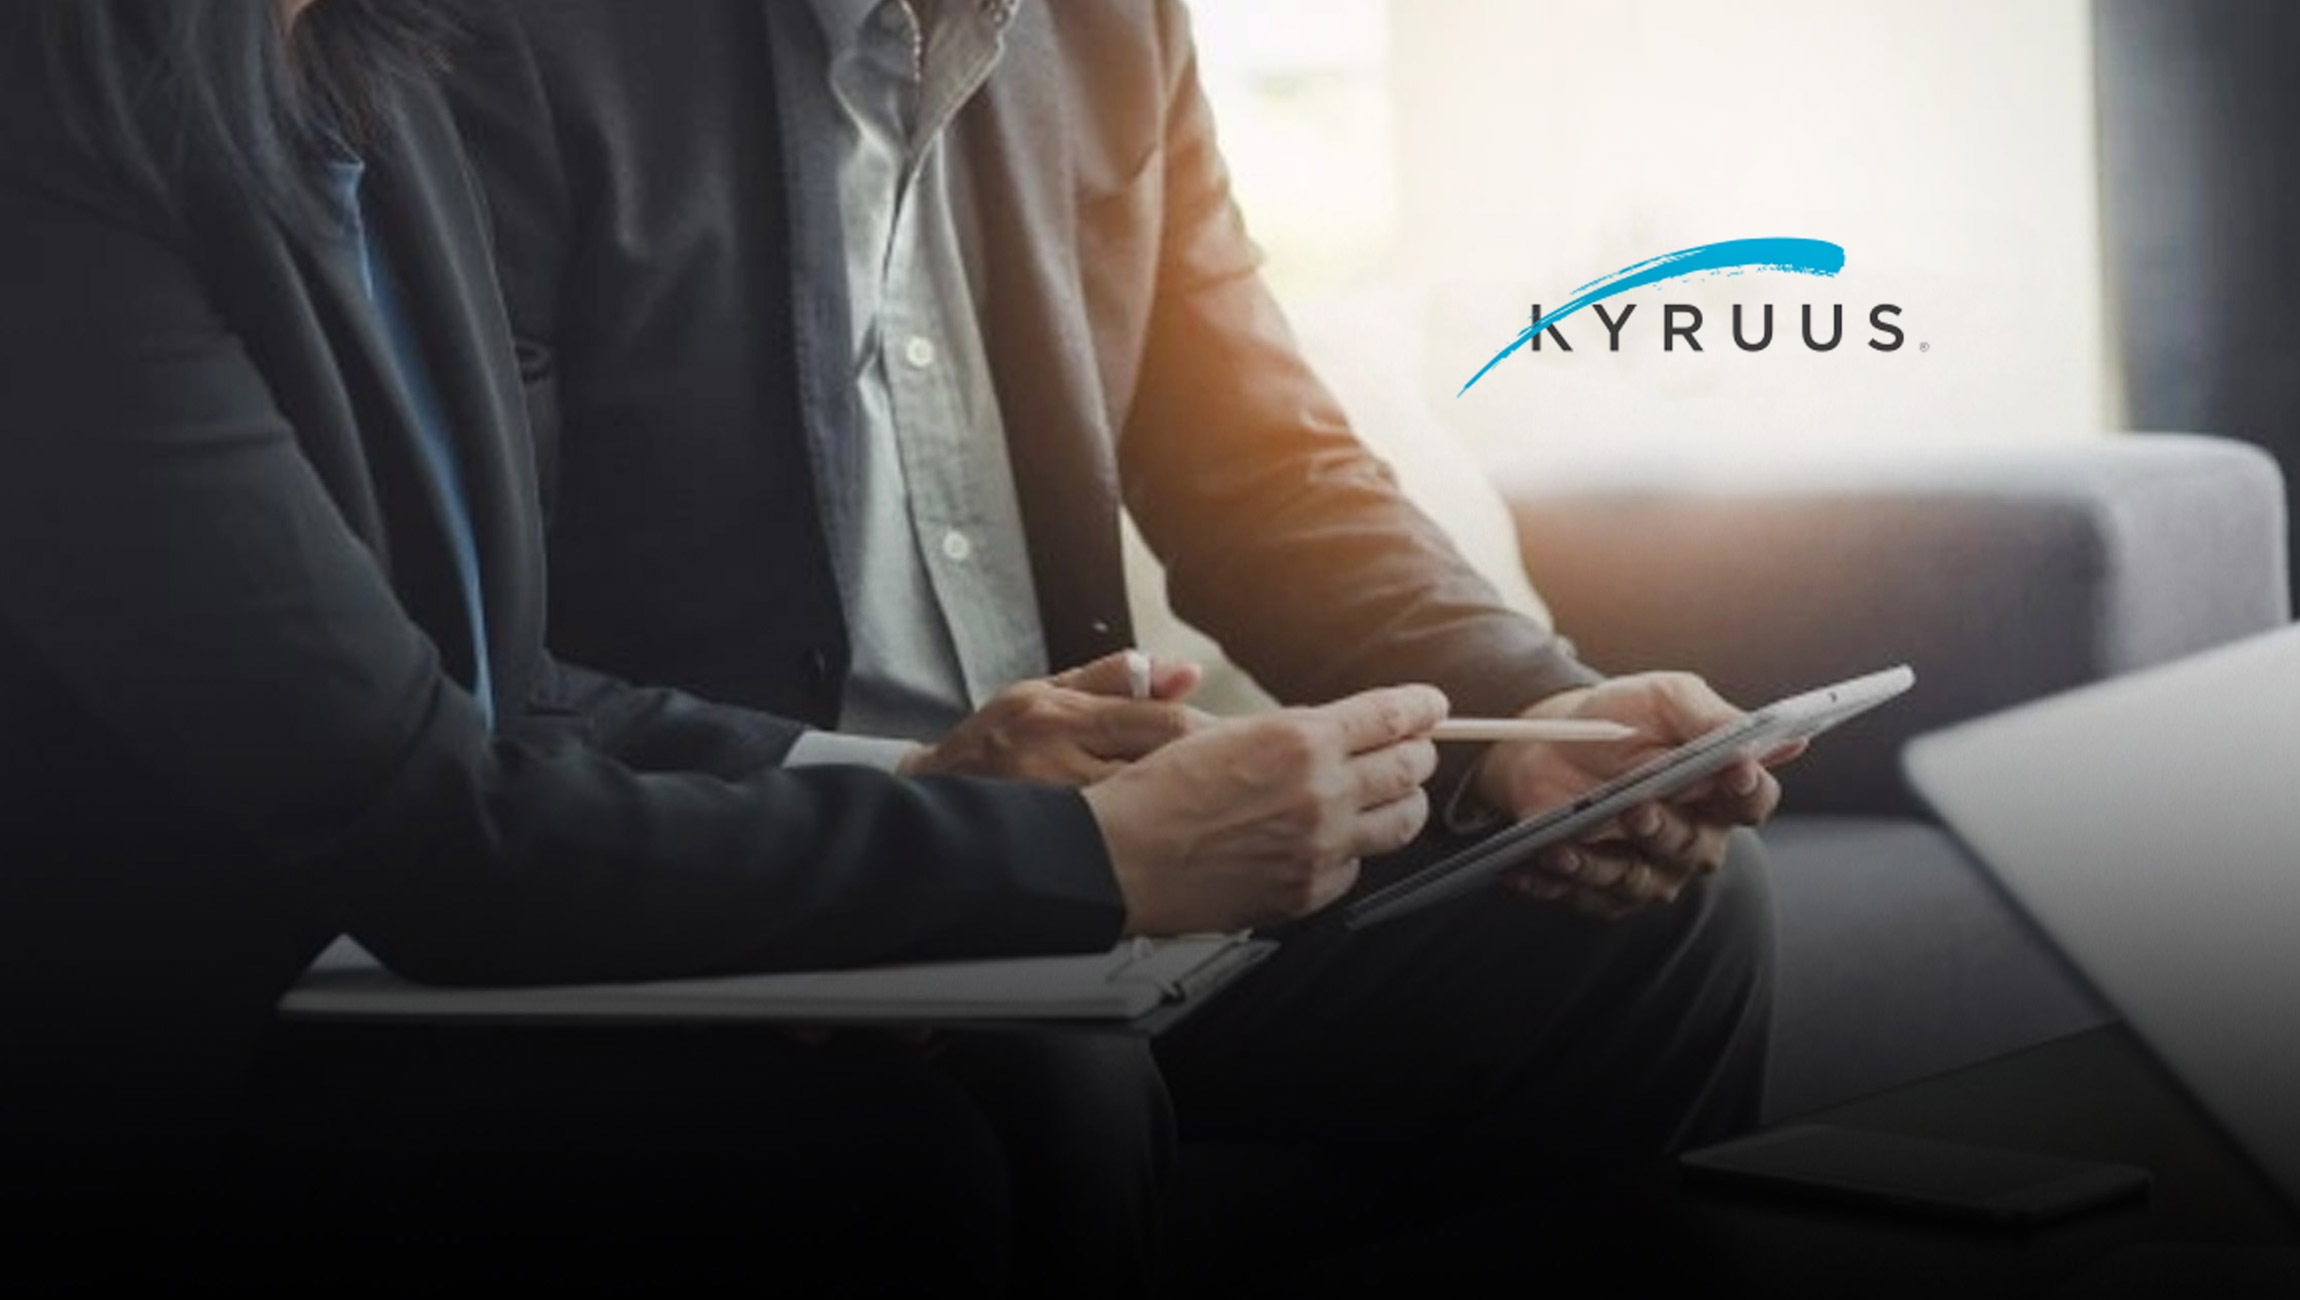 Kyruus Broadens its Online Scheduling Platform to Allow Consumers to Self-Book Diagnostic and Preventive Care Appointments